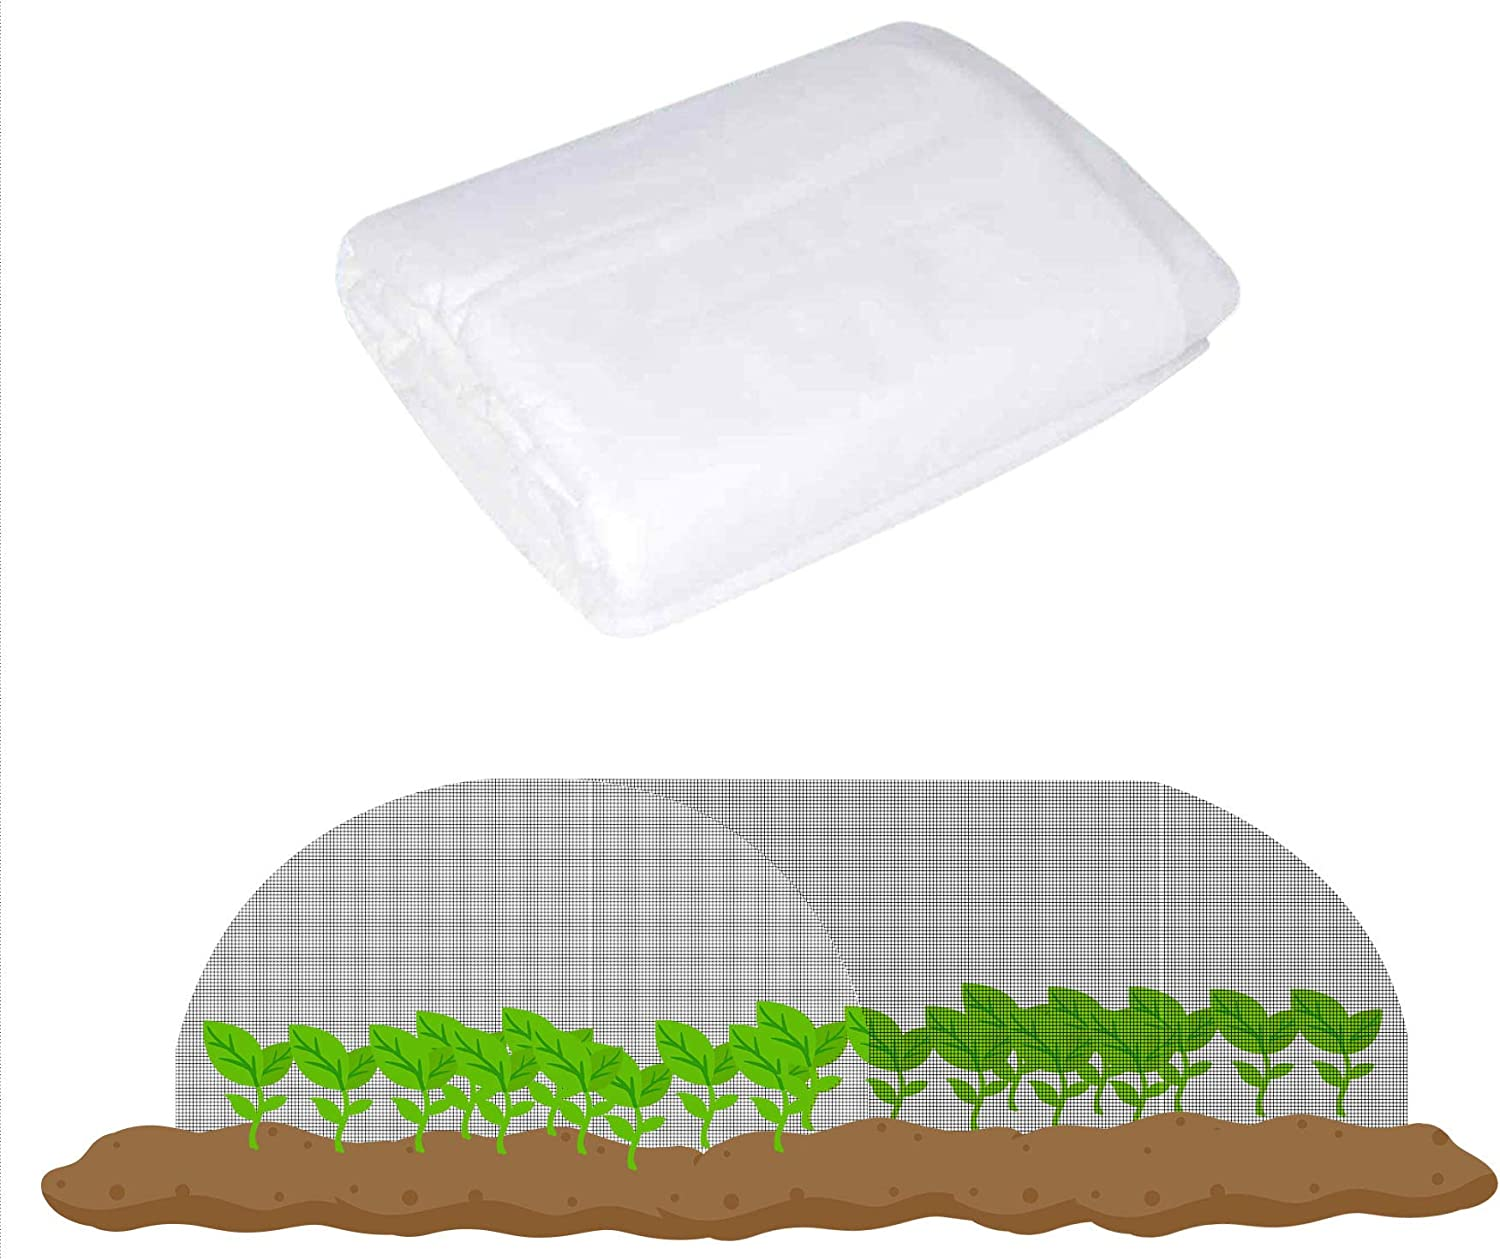 labworkauto Insect Barrier Netting Pest Barrier Net Garden Insect Screen Pest Guard Cover Plant Protect Mesh 0.8mm Fit for Protect Your Plants Fruits Flower 8ft x 50ft